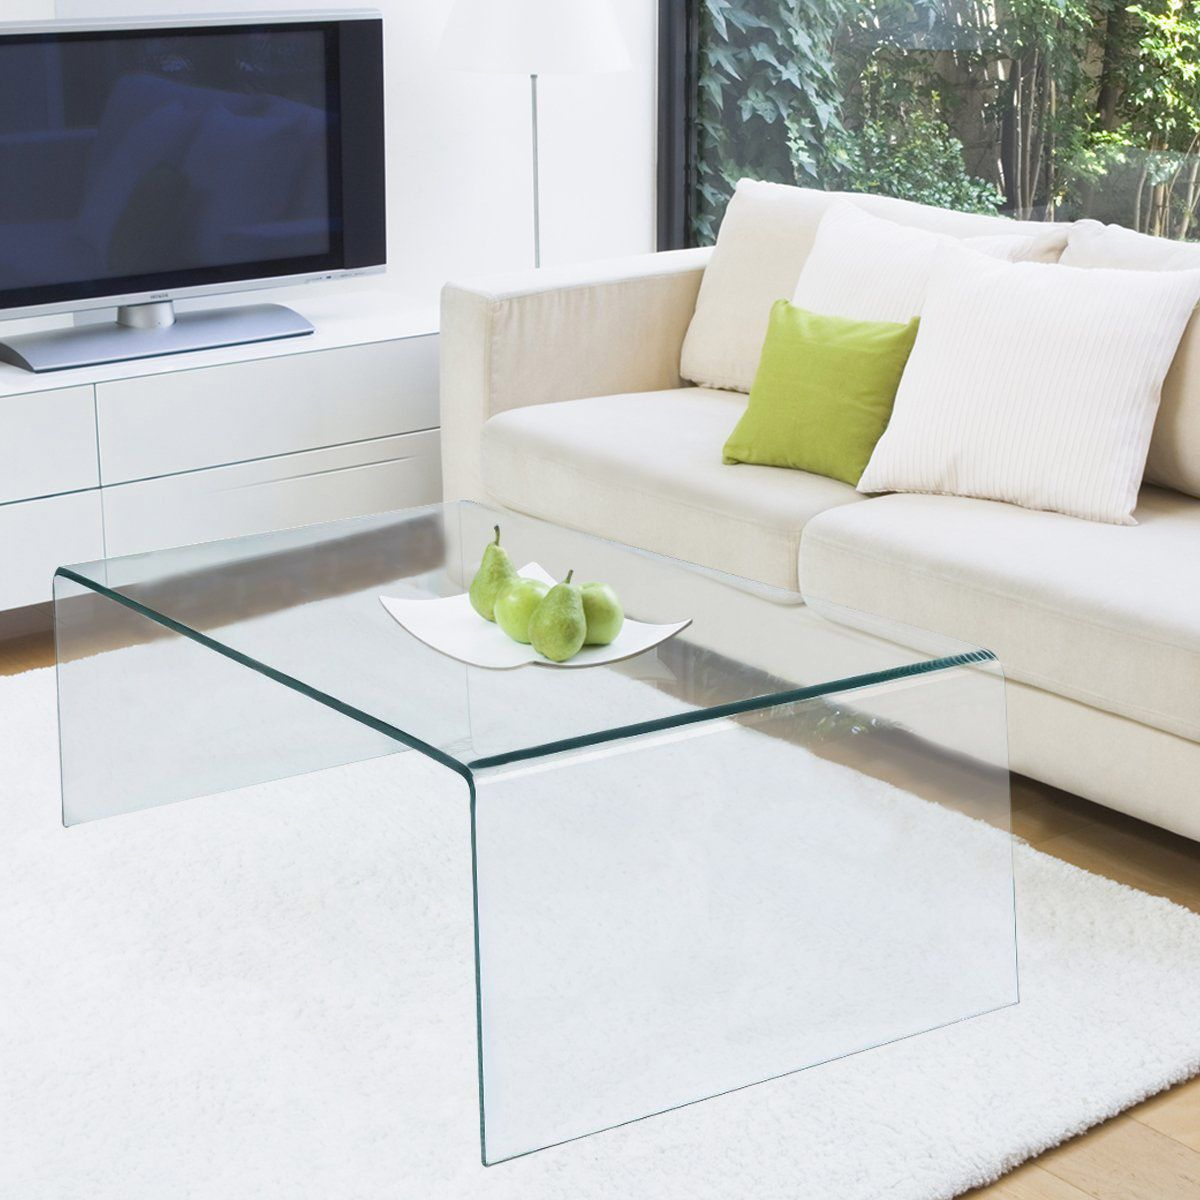 click glass nico leon coffee image tables living room product table to furniture s change chrome item